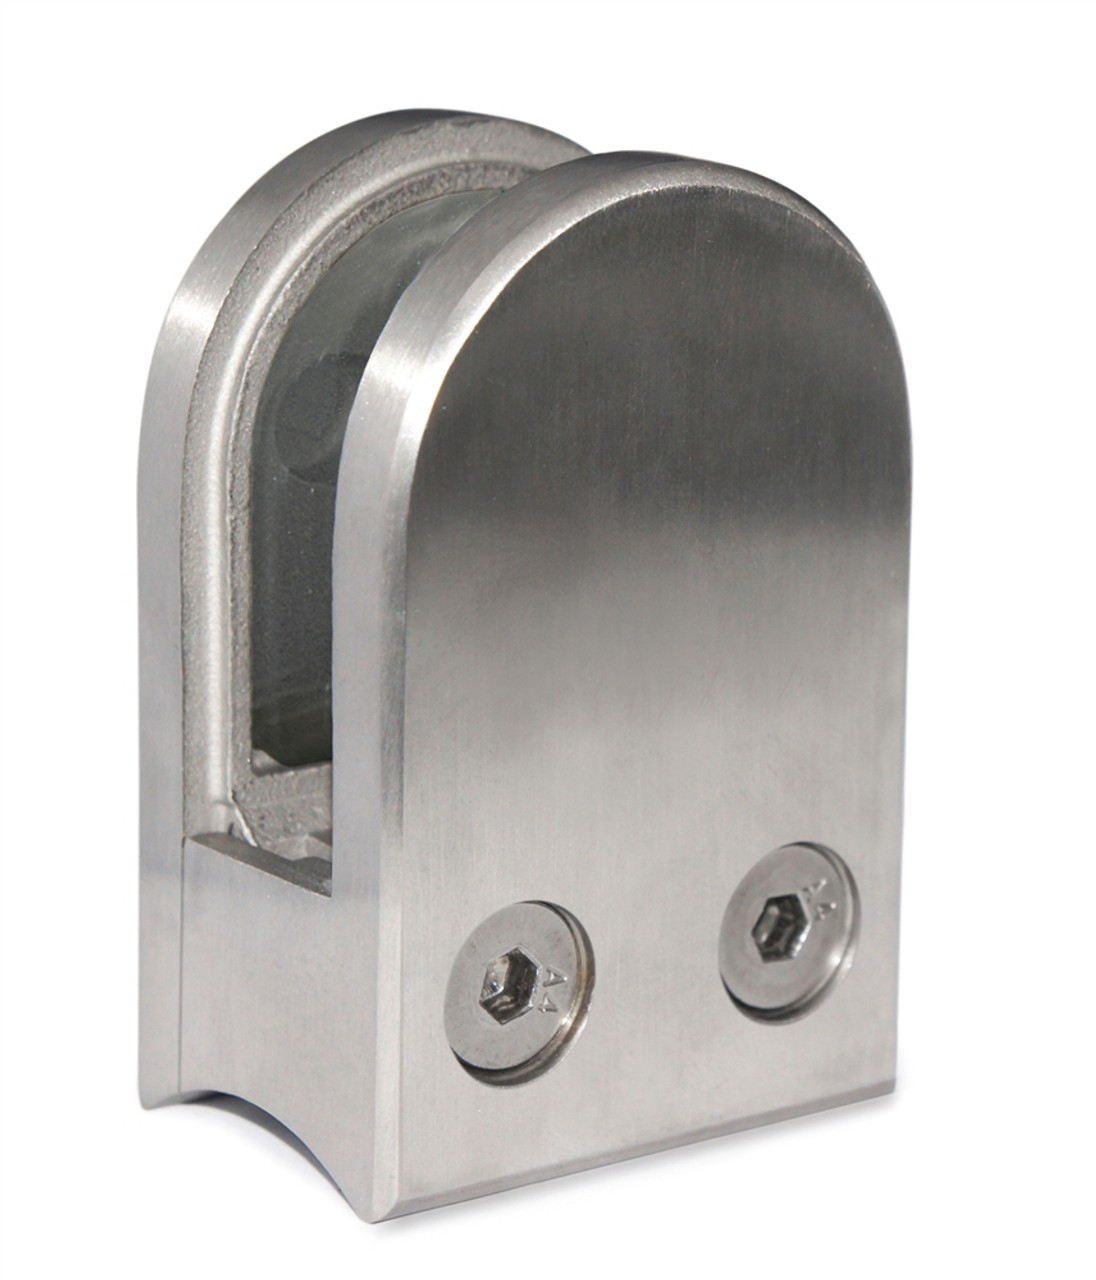 """E11404800 Stainless Steel Glass Clamp 1 3/4"""" x 2 31/64"""" for 1 7/8"""" Tube"""